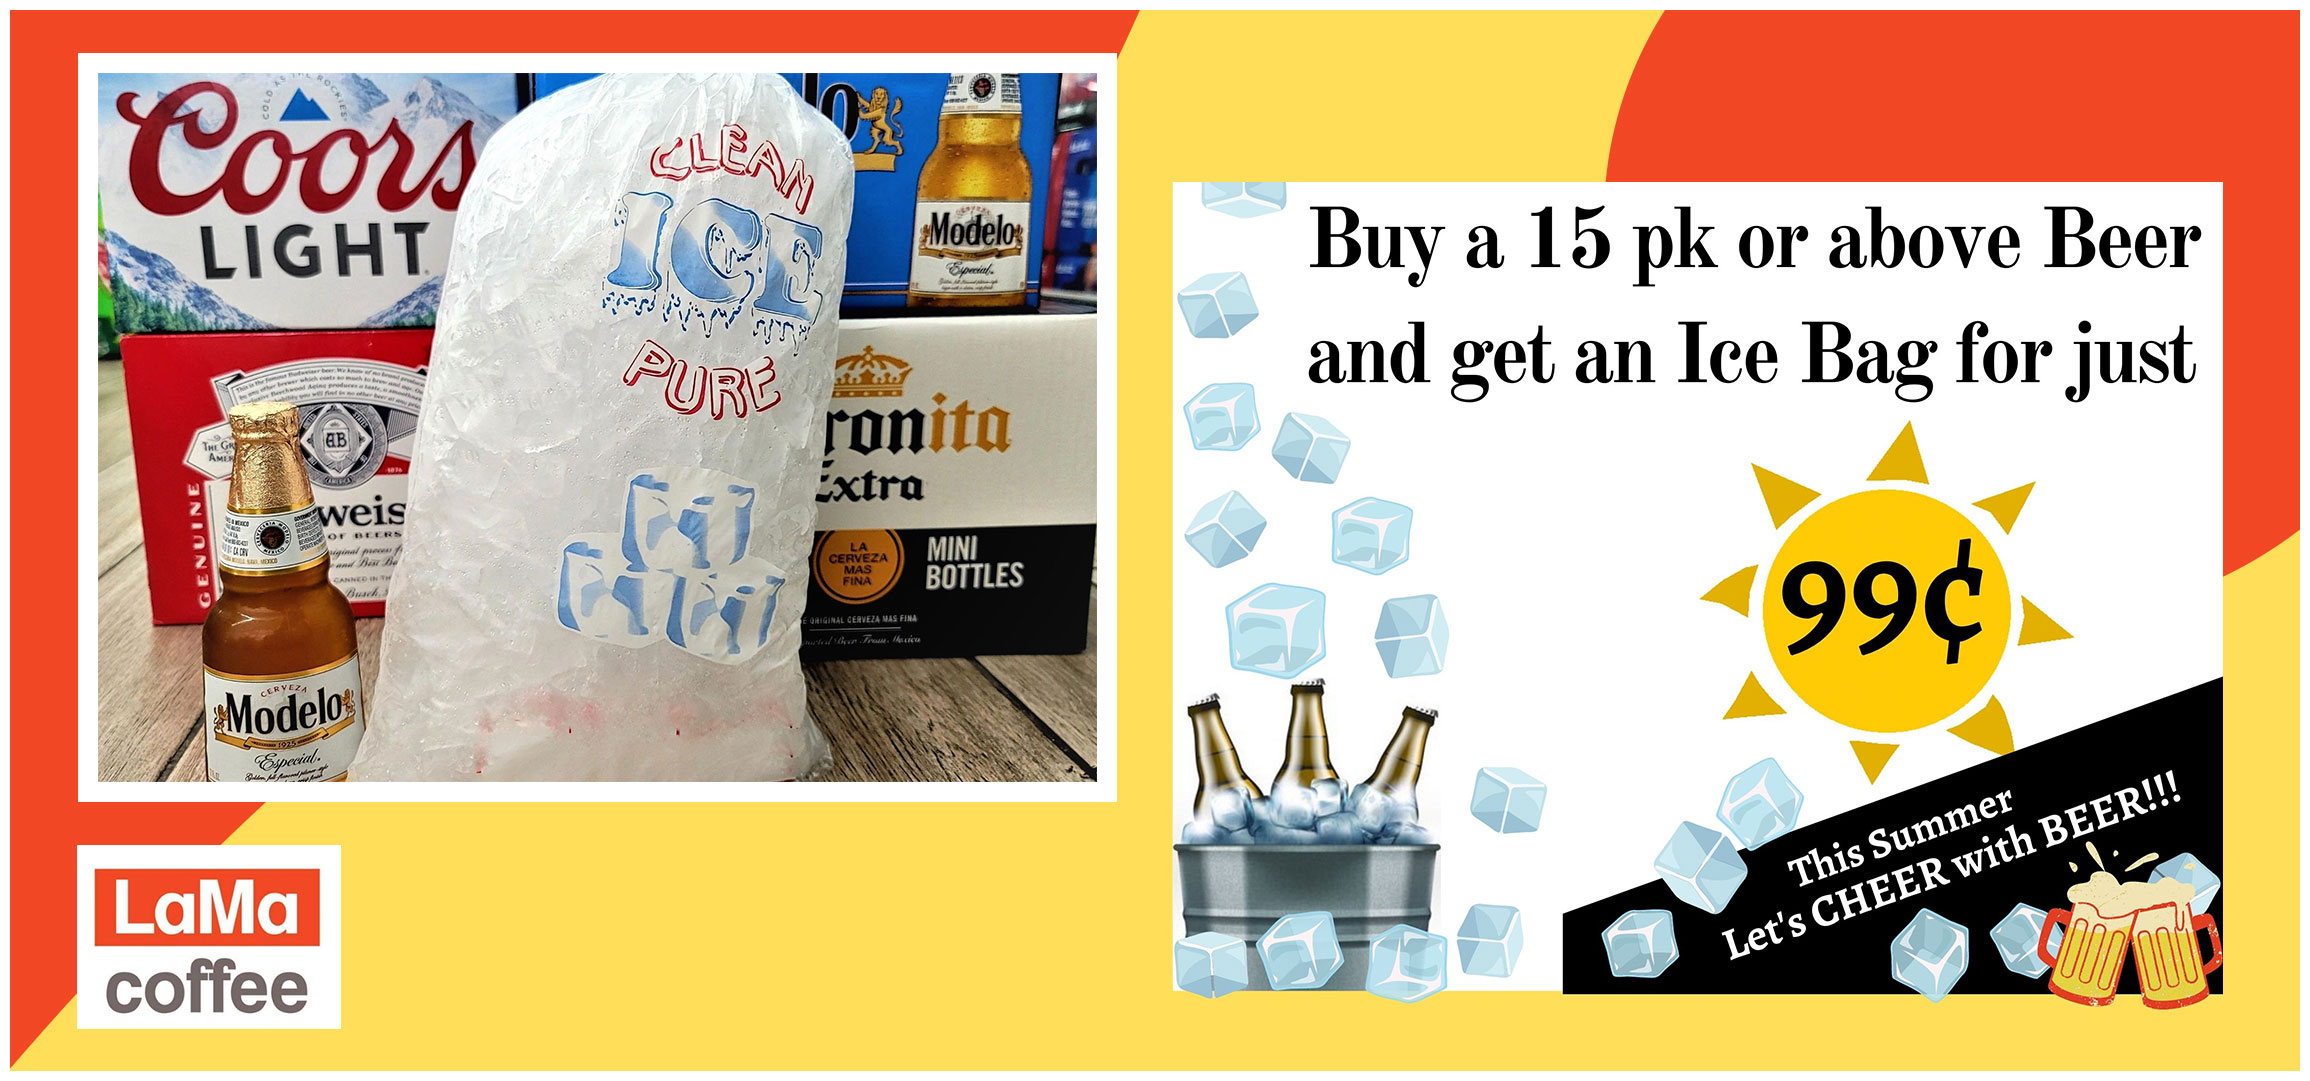 buy-a-15-pack-or-above-beer-and-get-an-ice-bag-for-just $0.99